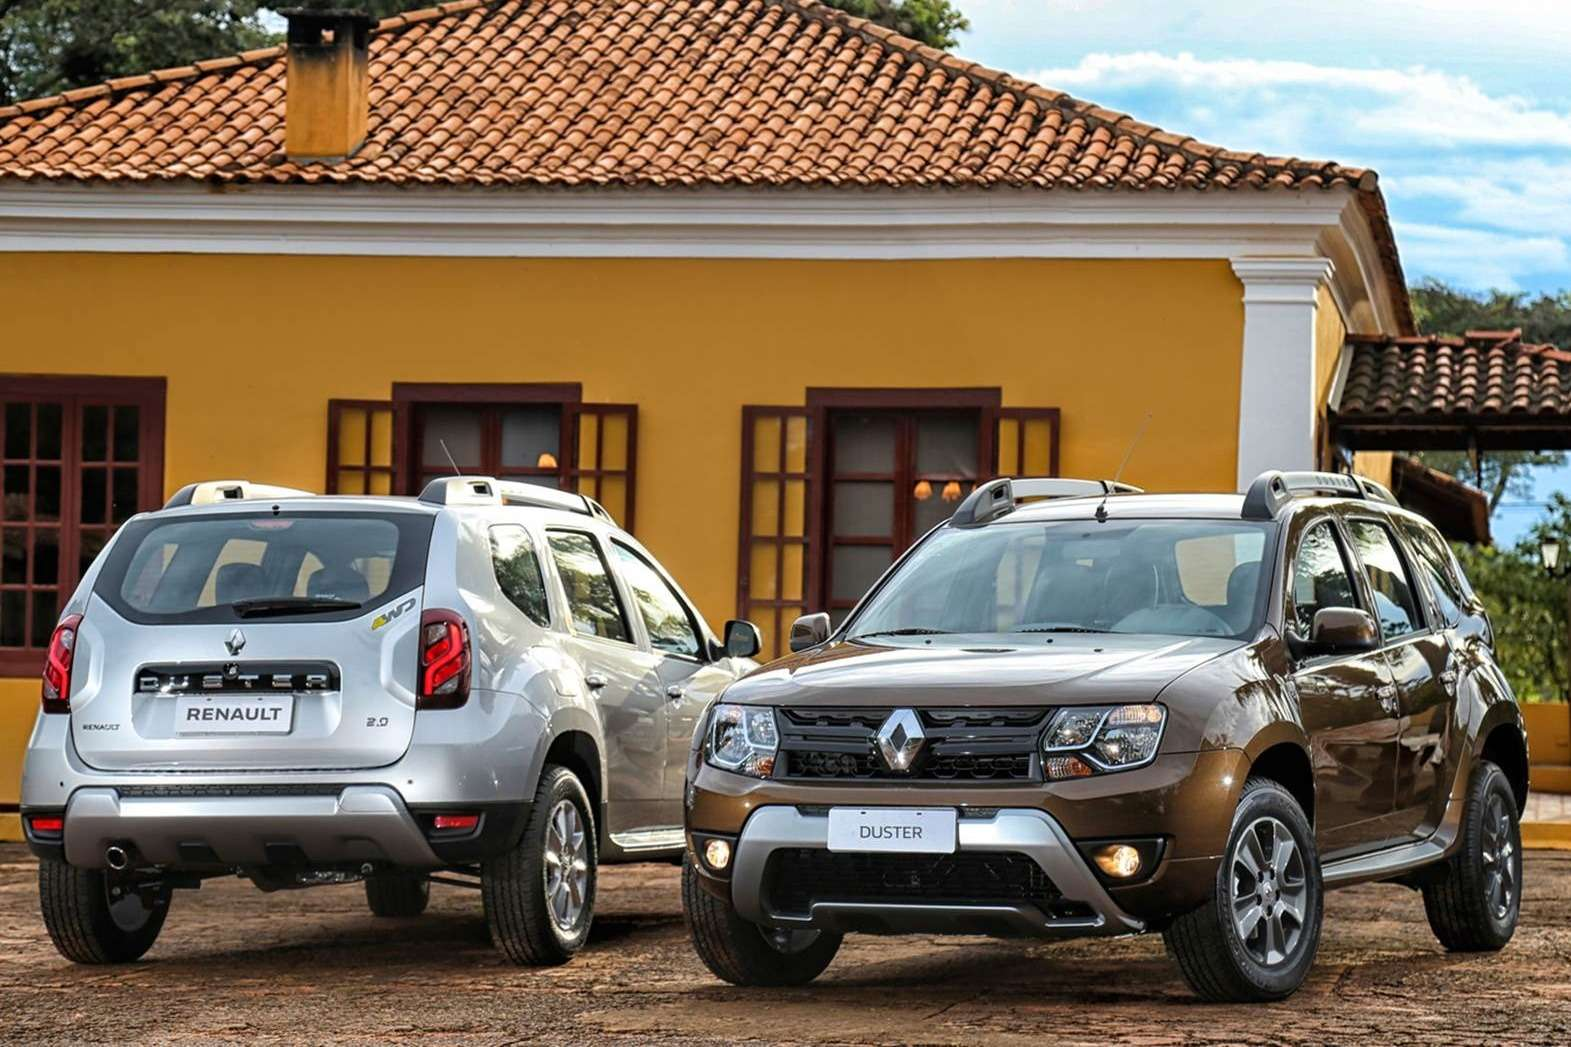 2016-renault-duster-launched-with-new-look-better-economy-in-brazil-photo-gallery_7